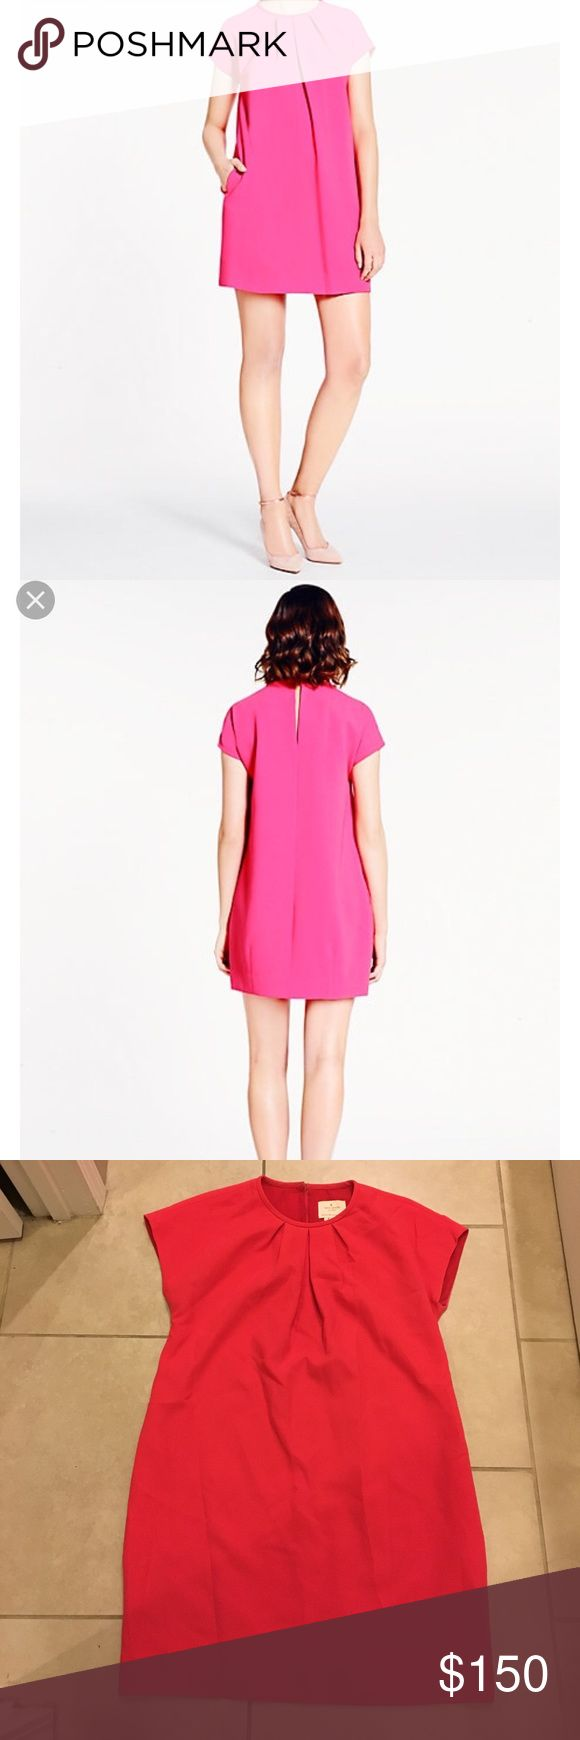 Kate Spade cap sleeve pink shift dress. Size 6 100% authentic Kate Spade New York cap sleeve, crepe, pink shift dress. Size 6. Very good condition. Deepened hot pink color. Purchased at Kate Spade store, Ala Moana mall, Honolulu.  NO TRADES.  Smoke free home. Open to reasonable offers. kate spade Dresses Midi